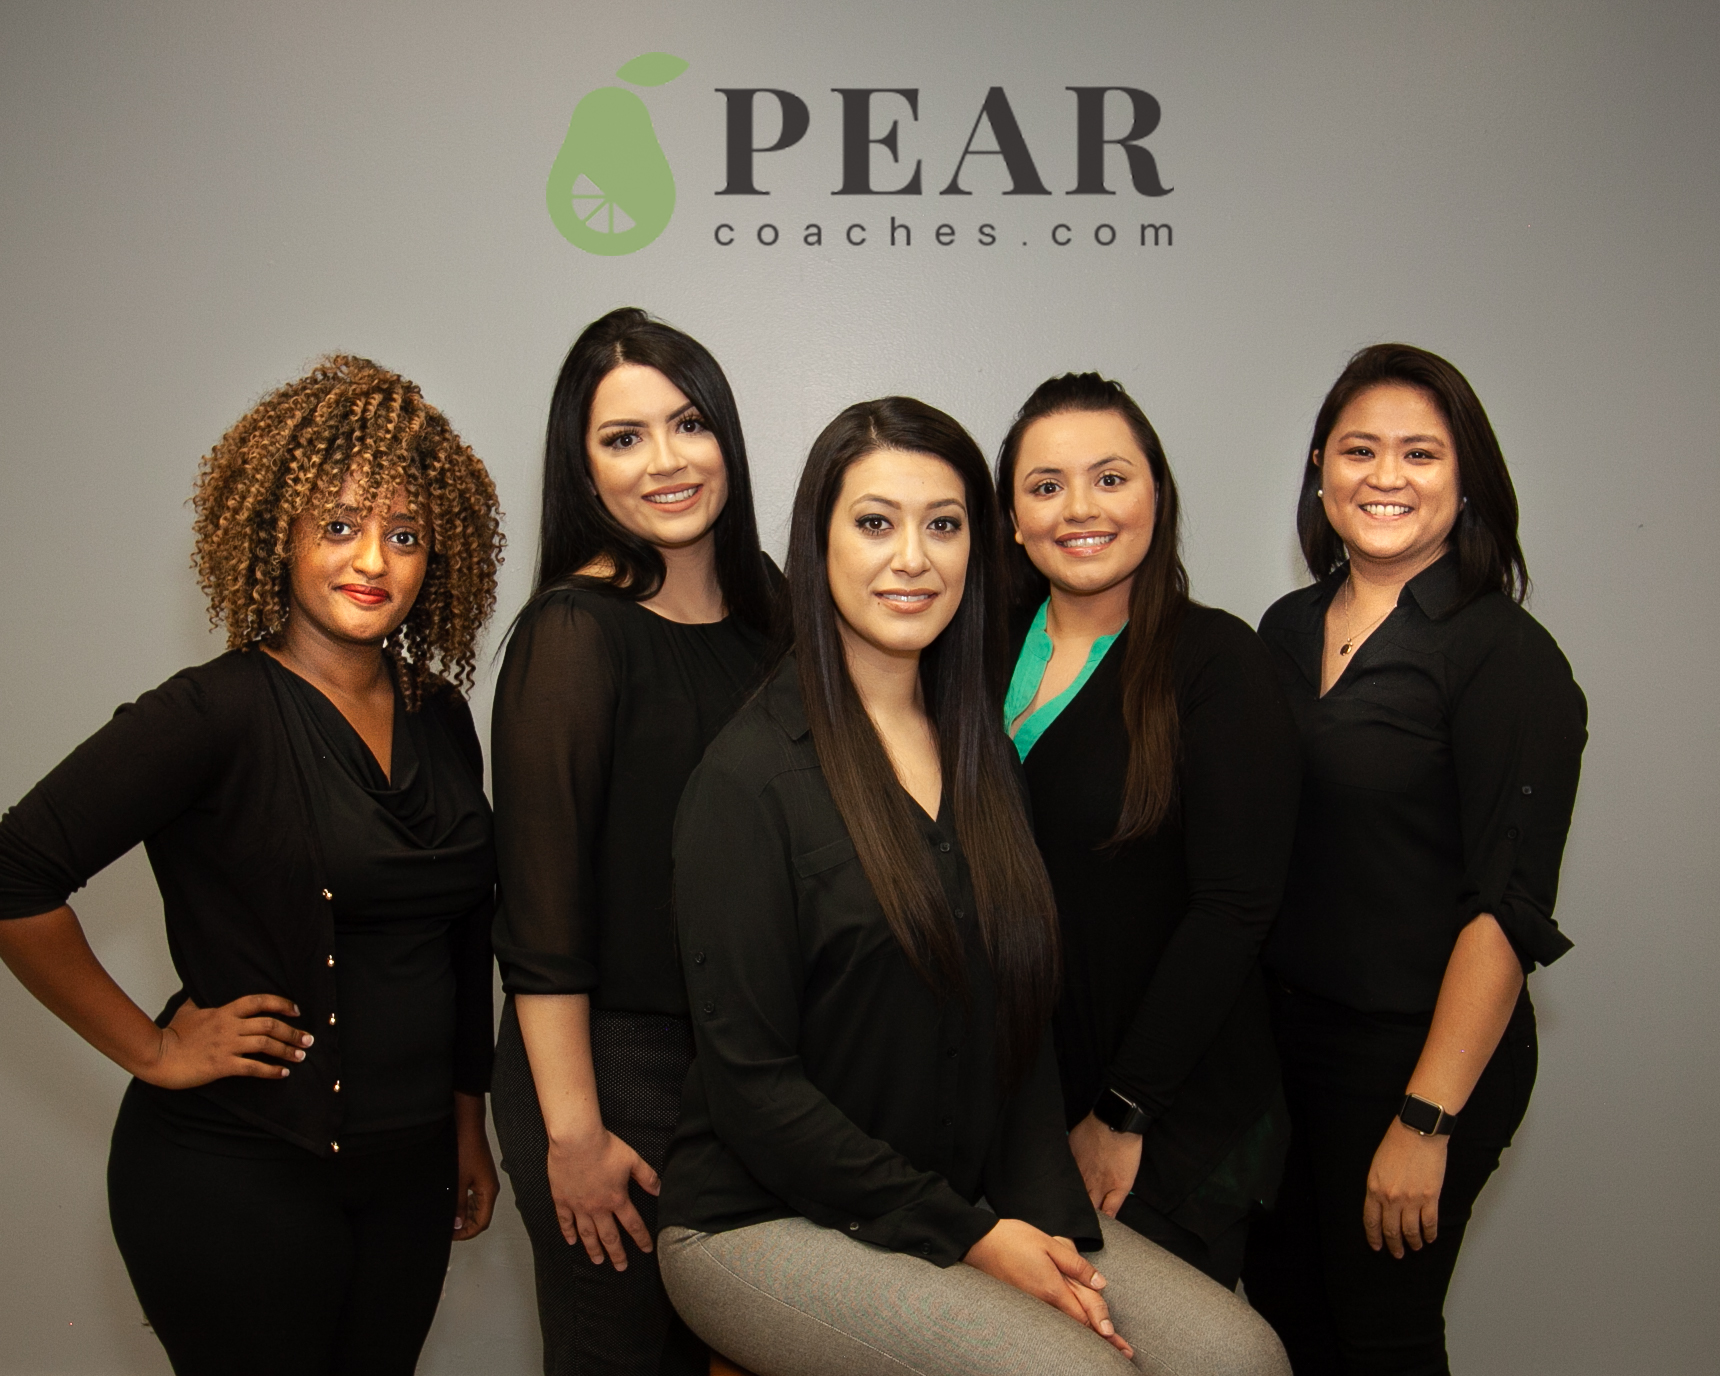 The Team at Pear Coaches